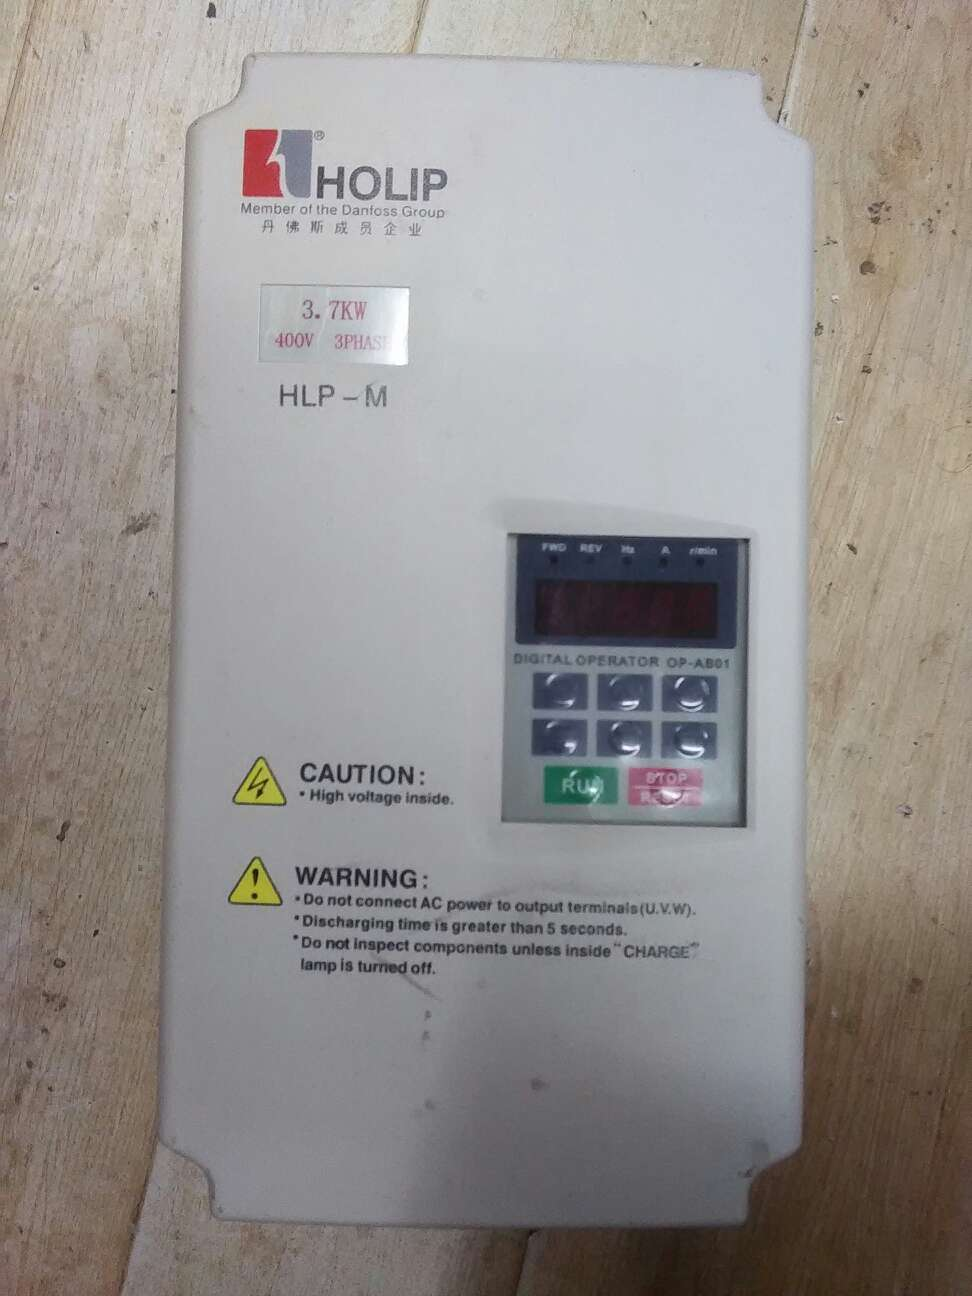 VFD HOLIP HLP-M03D743B  Grinder  Inverter 3.7KW 4KW three-phase  motor speed controller 380V  IGBT